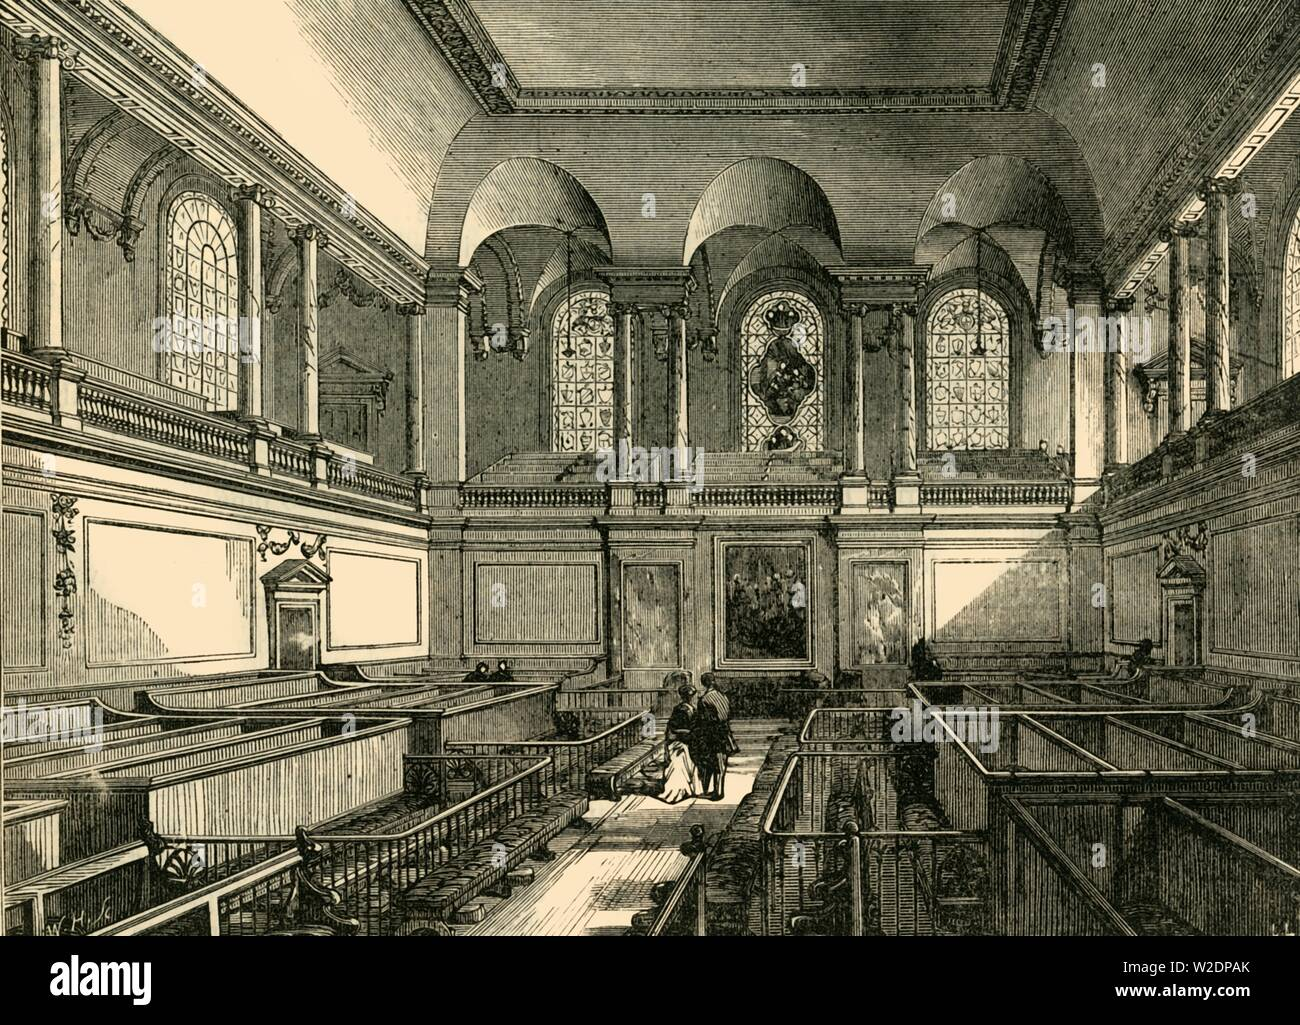 """'Interior of the Chapel of the Foundling Hospital', c1876. Founded in 1739 by Thomas Coram, the Foundling Hospital in Bloomsbury was a children's home for the """"education and maintenance of exposed and deserted young children' and a fashionable charity of the time. From """"Old and New London: A Narrative of Its History, Its People, and Its Places. The Western and Northern Studies"""", by Edward Walford. [Cassell, Petter, Galpin & Co., London, Paris & New York] - Stock Image"""